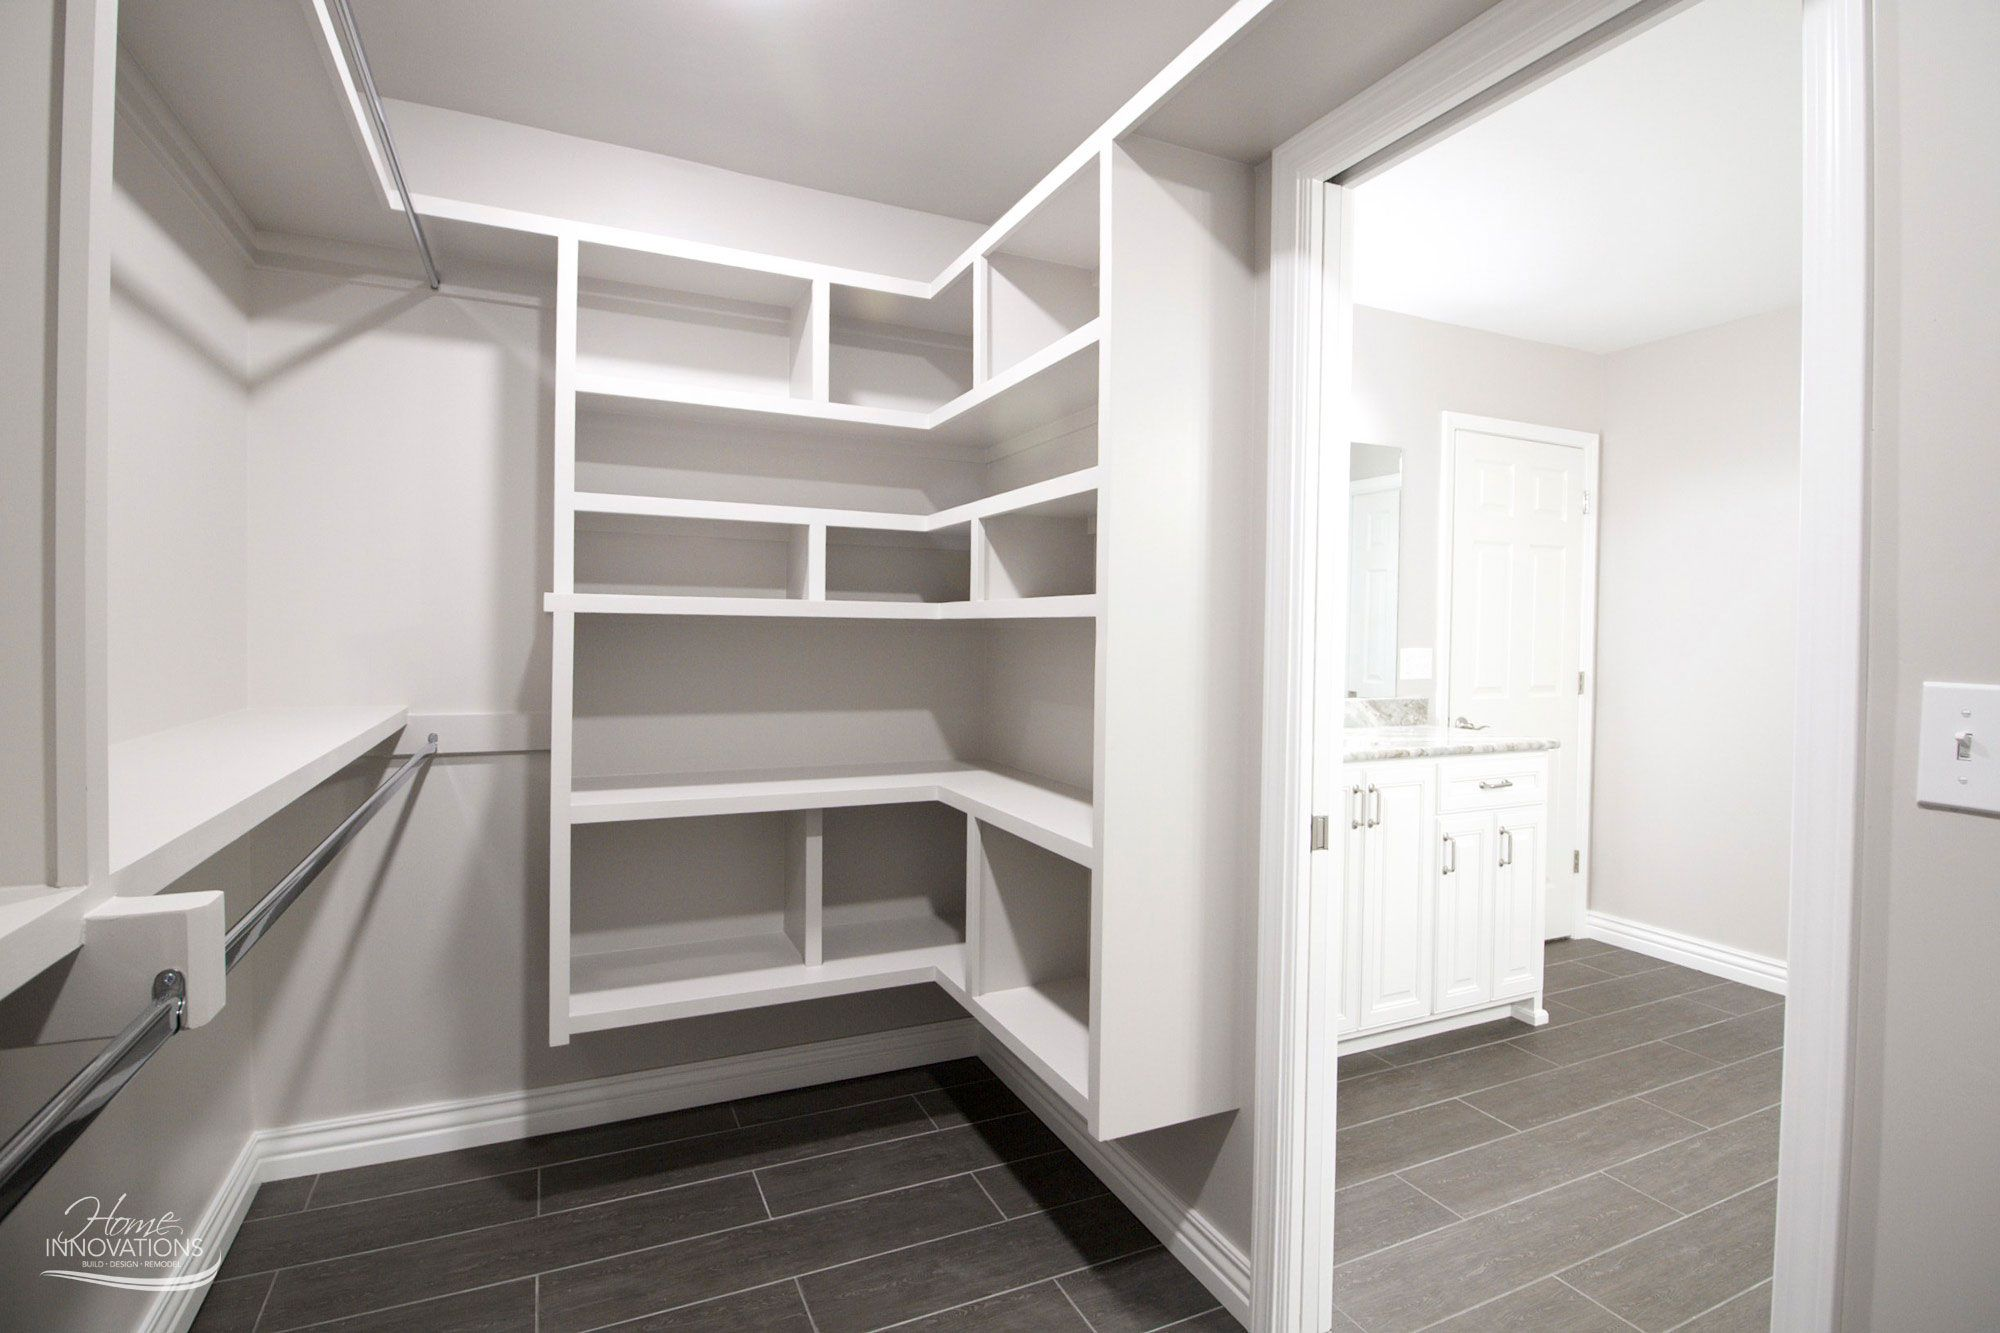 Master Bathroom Remodel  New Master Closet With Builtin Shelves Best Tulsa Bathroom Remodeling Inspiration